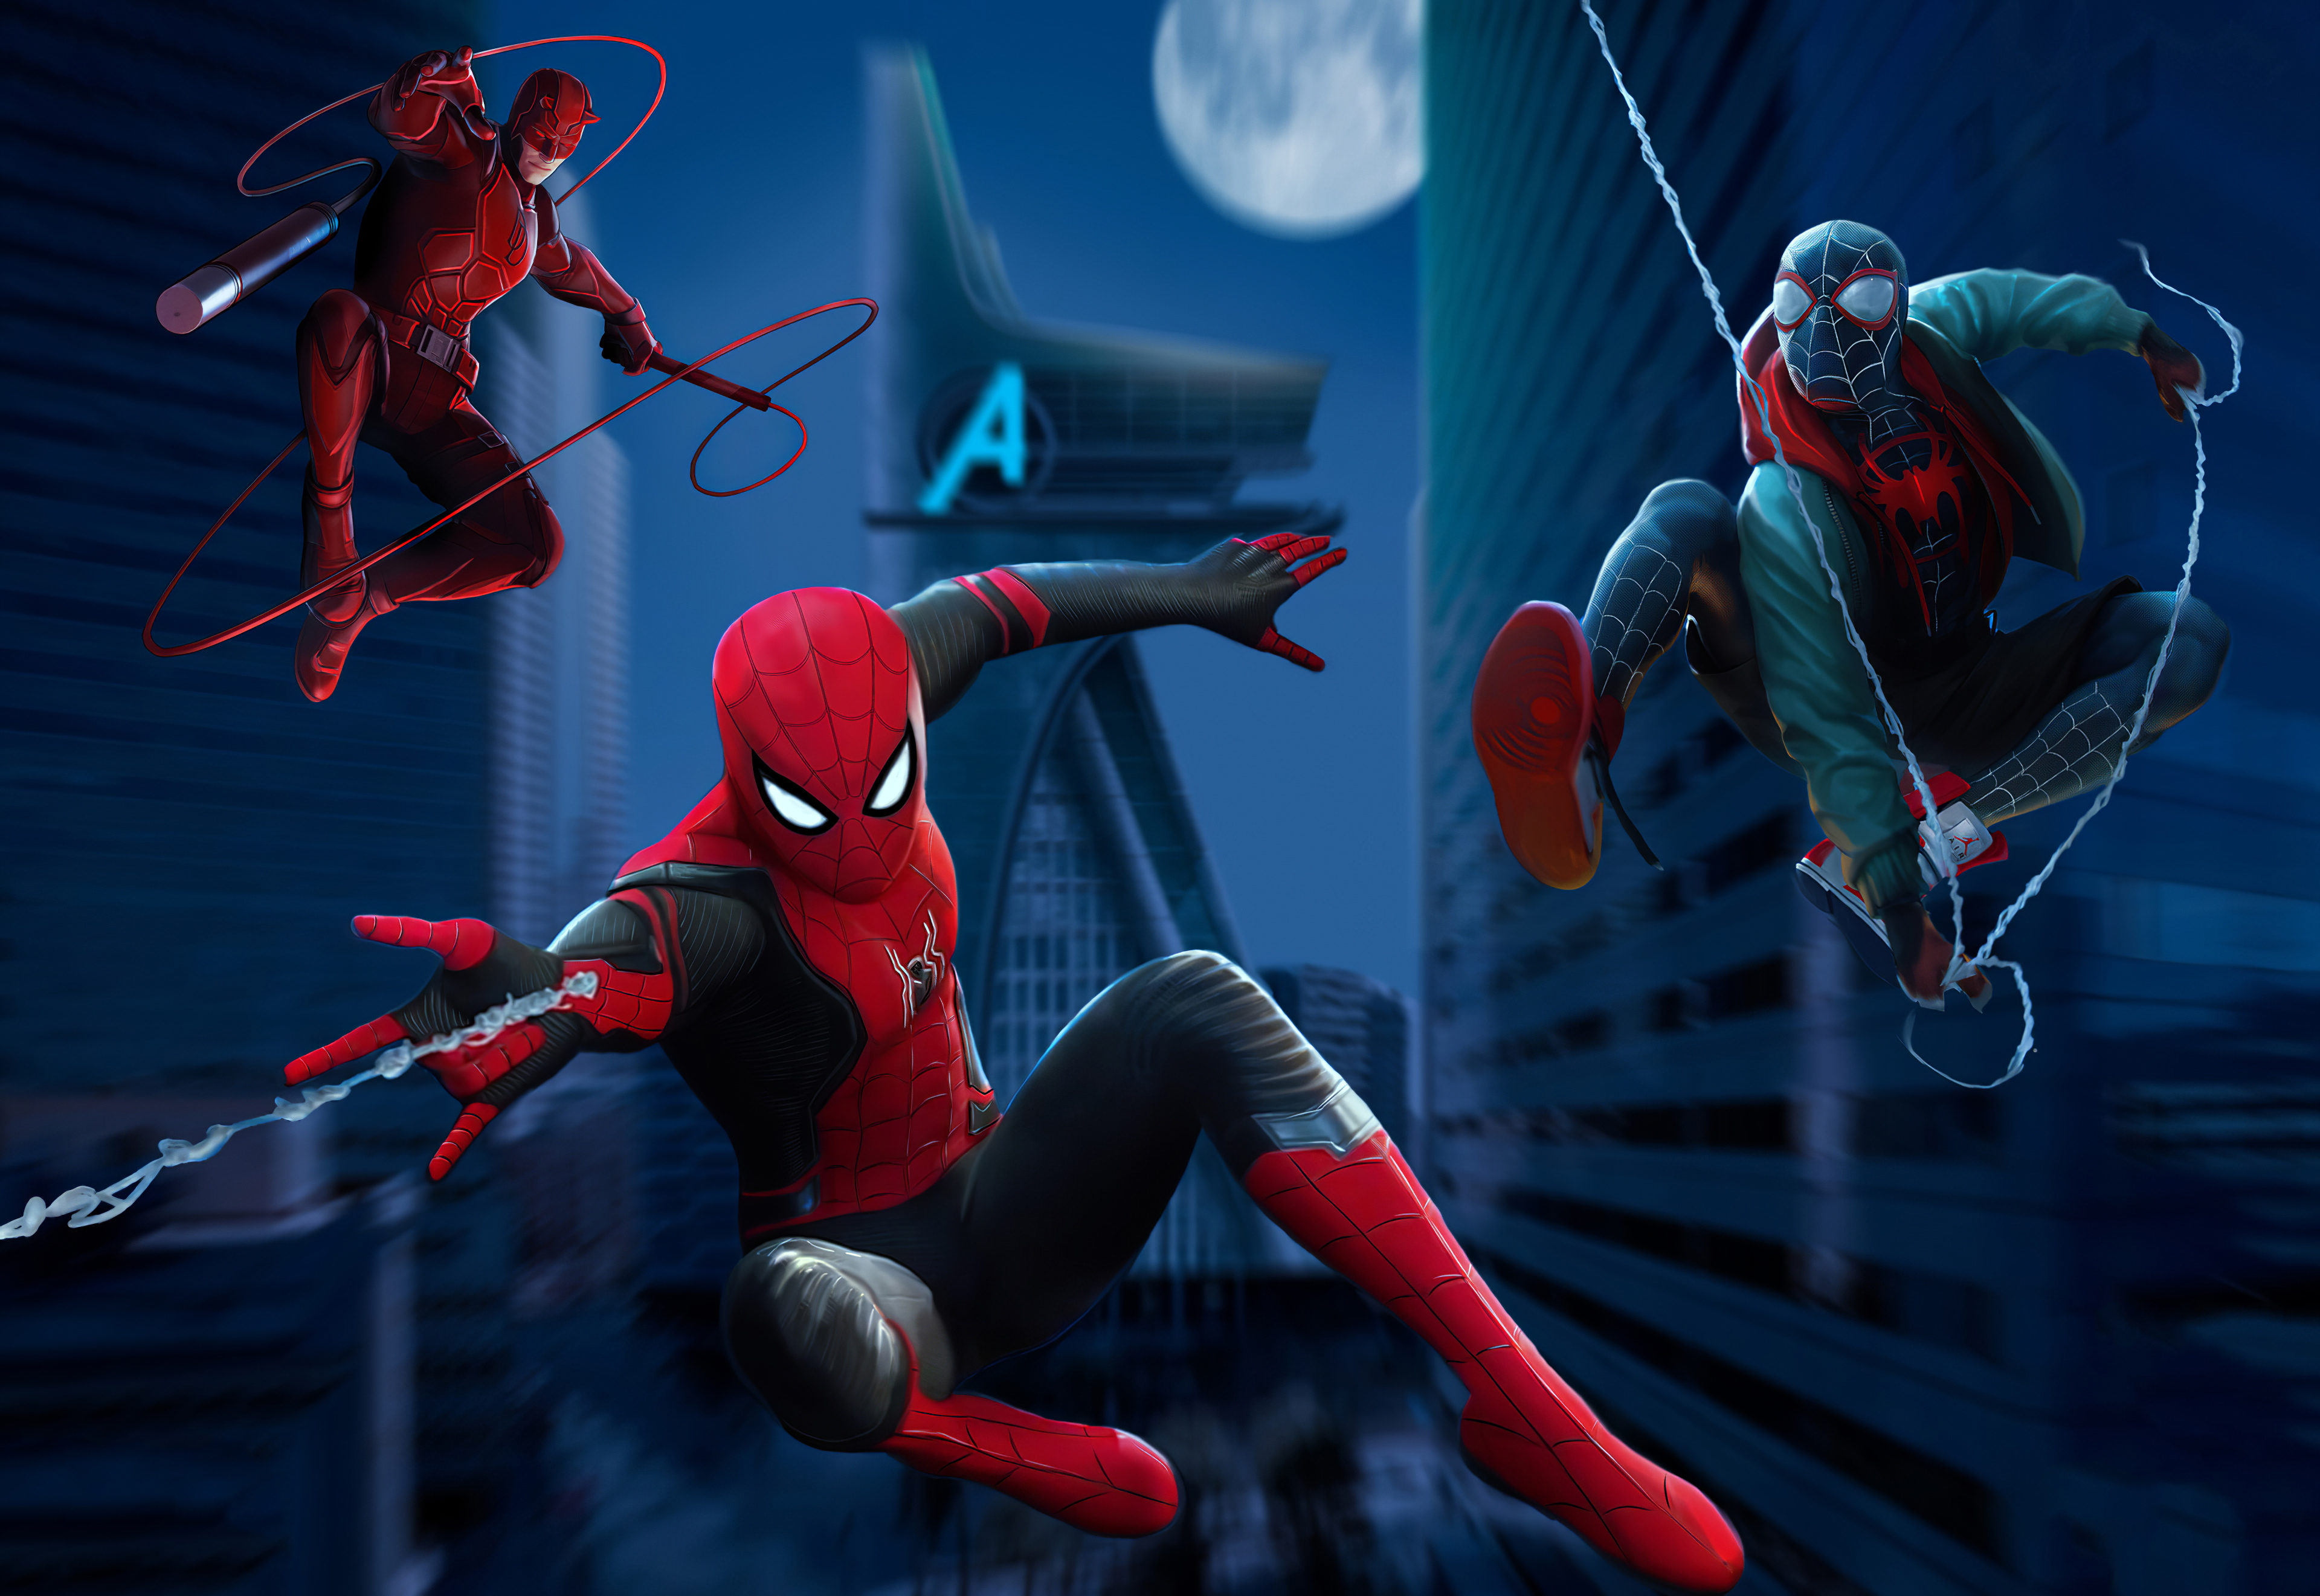 Two Spider-men and a Daredevil